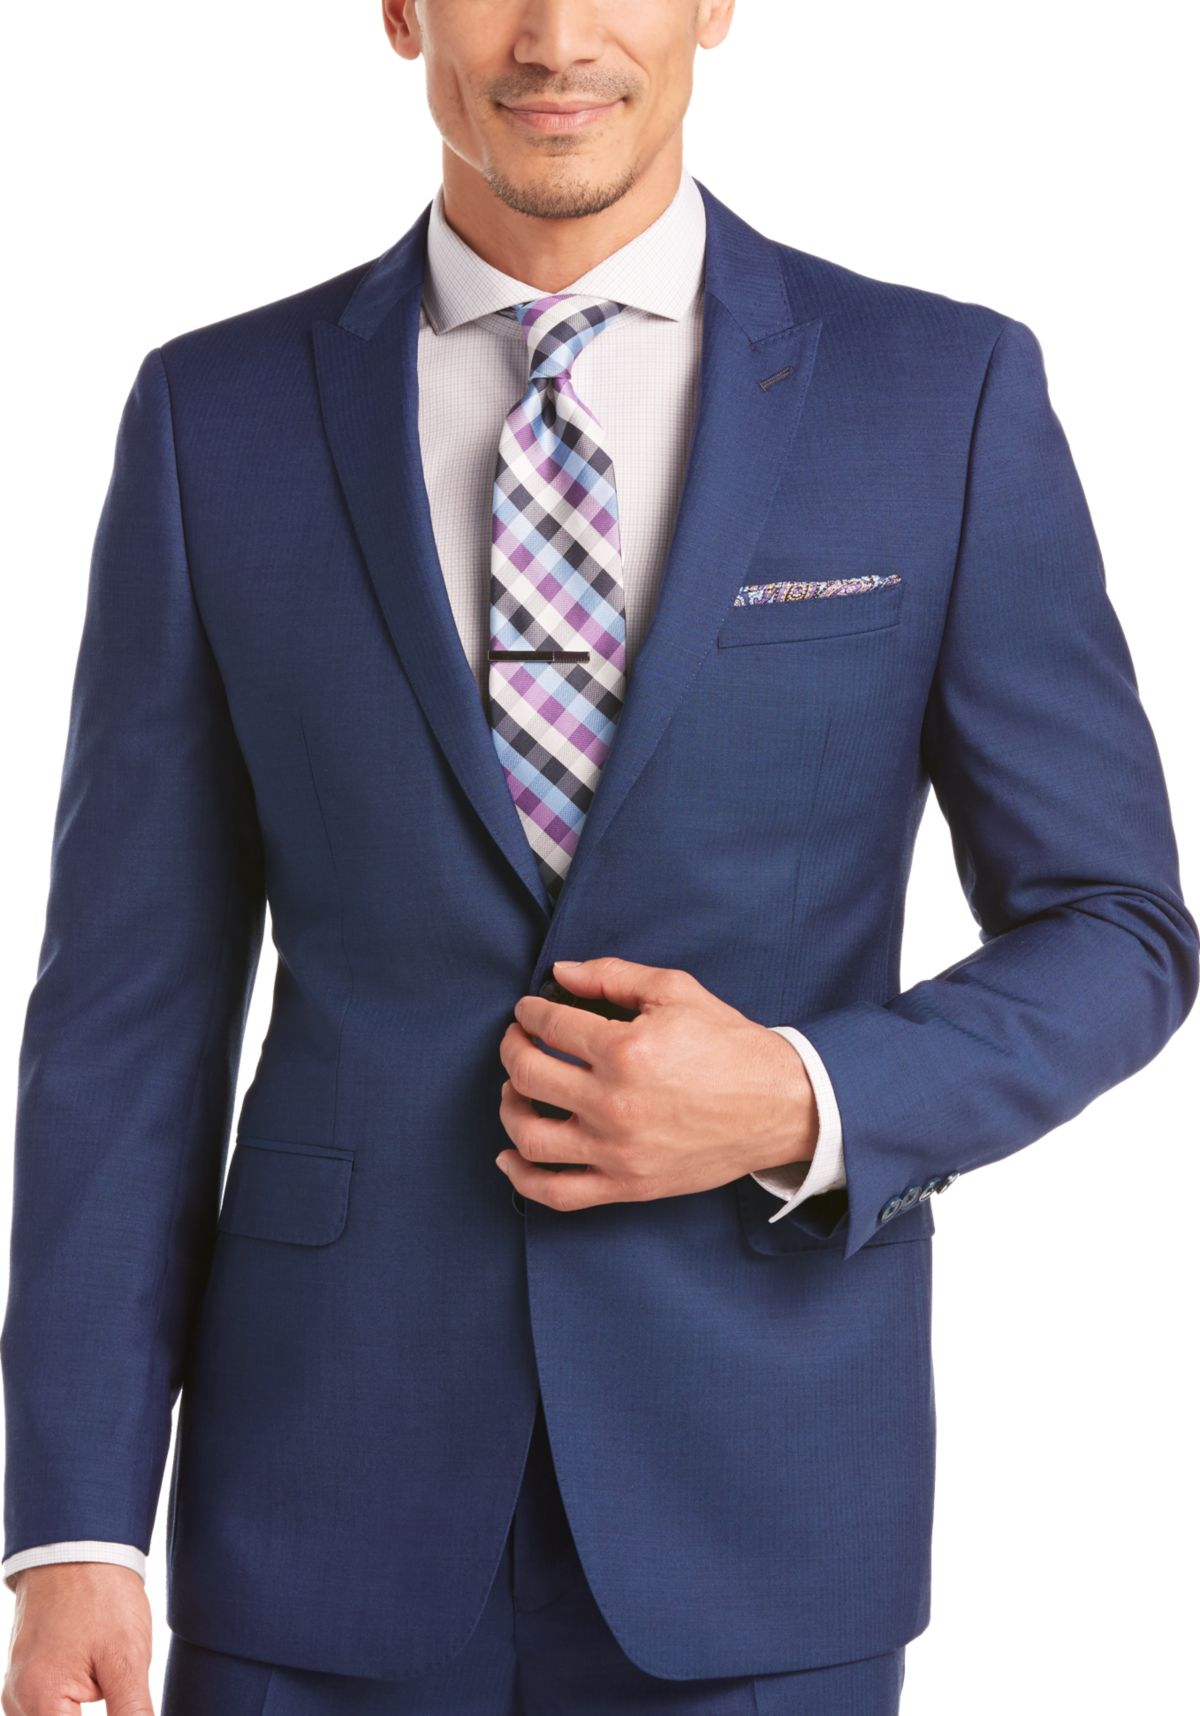 Calvin Klein Blue Extreme Slim Fit Suit - Men's Extreme Slim Fit ...